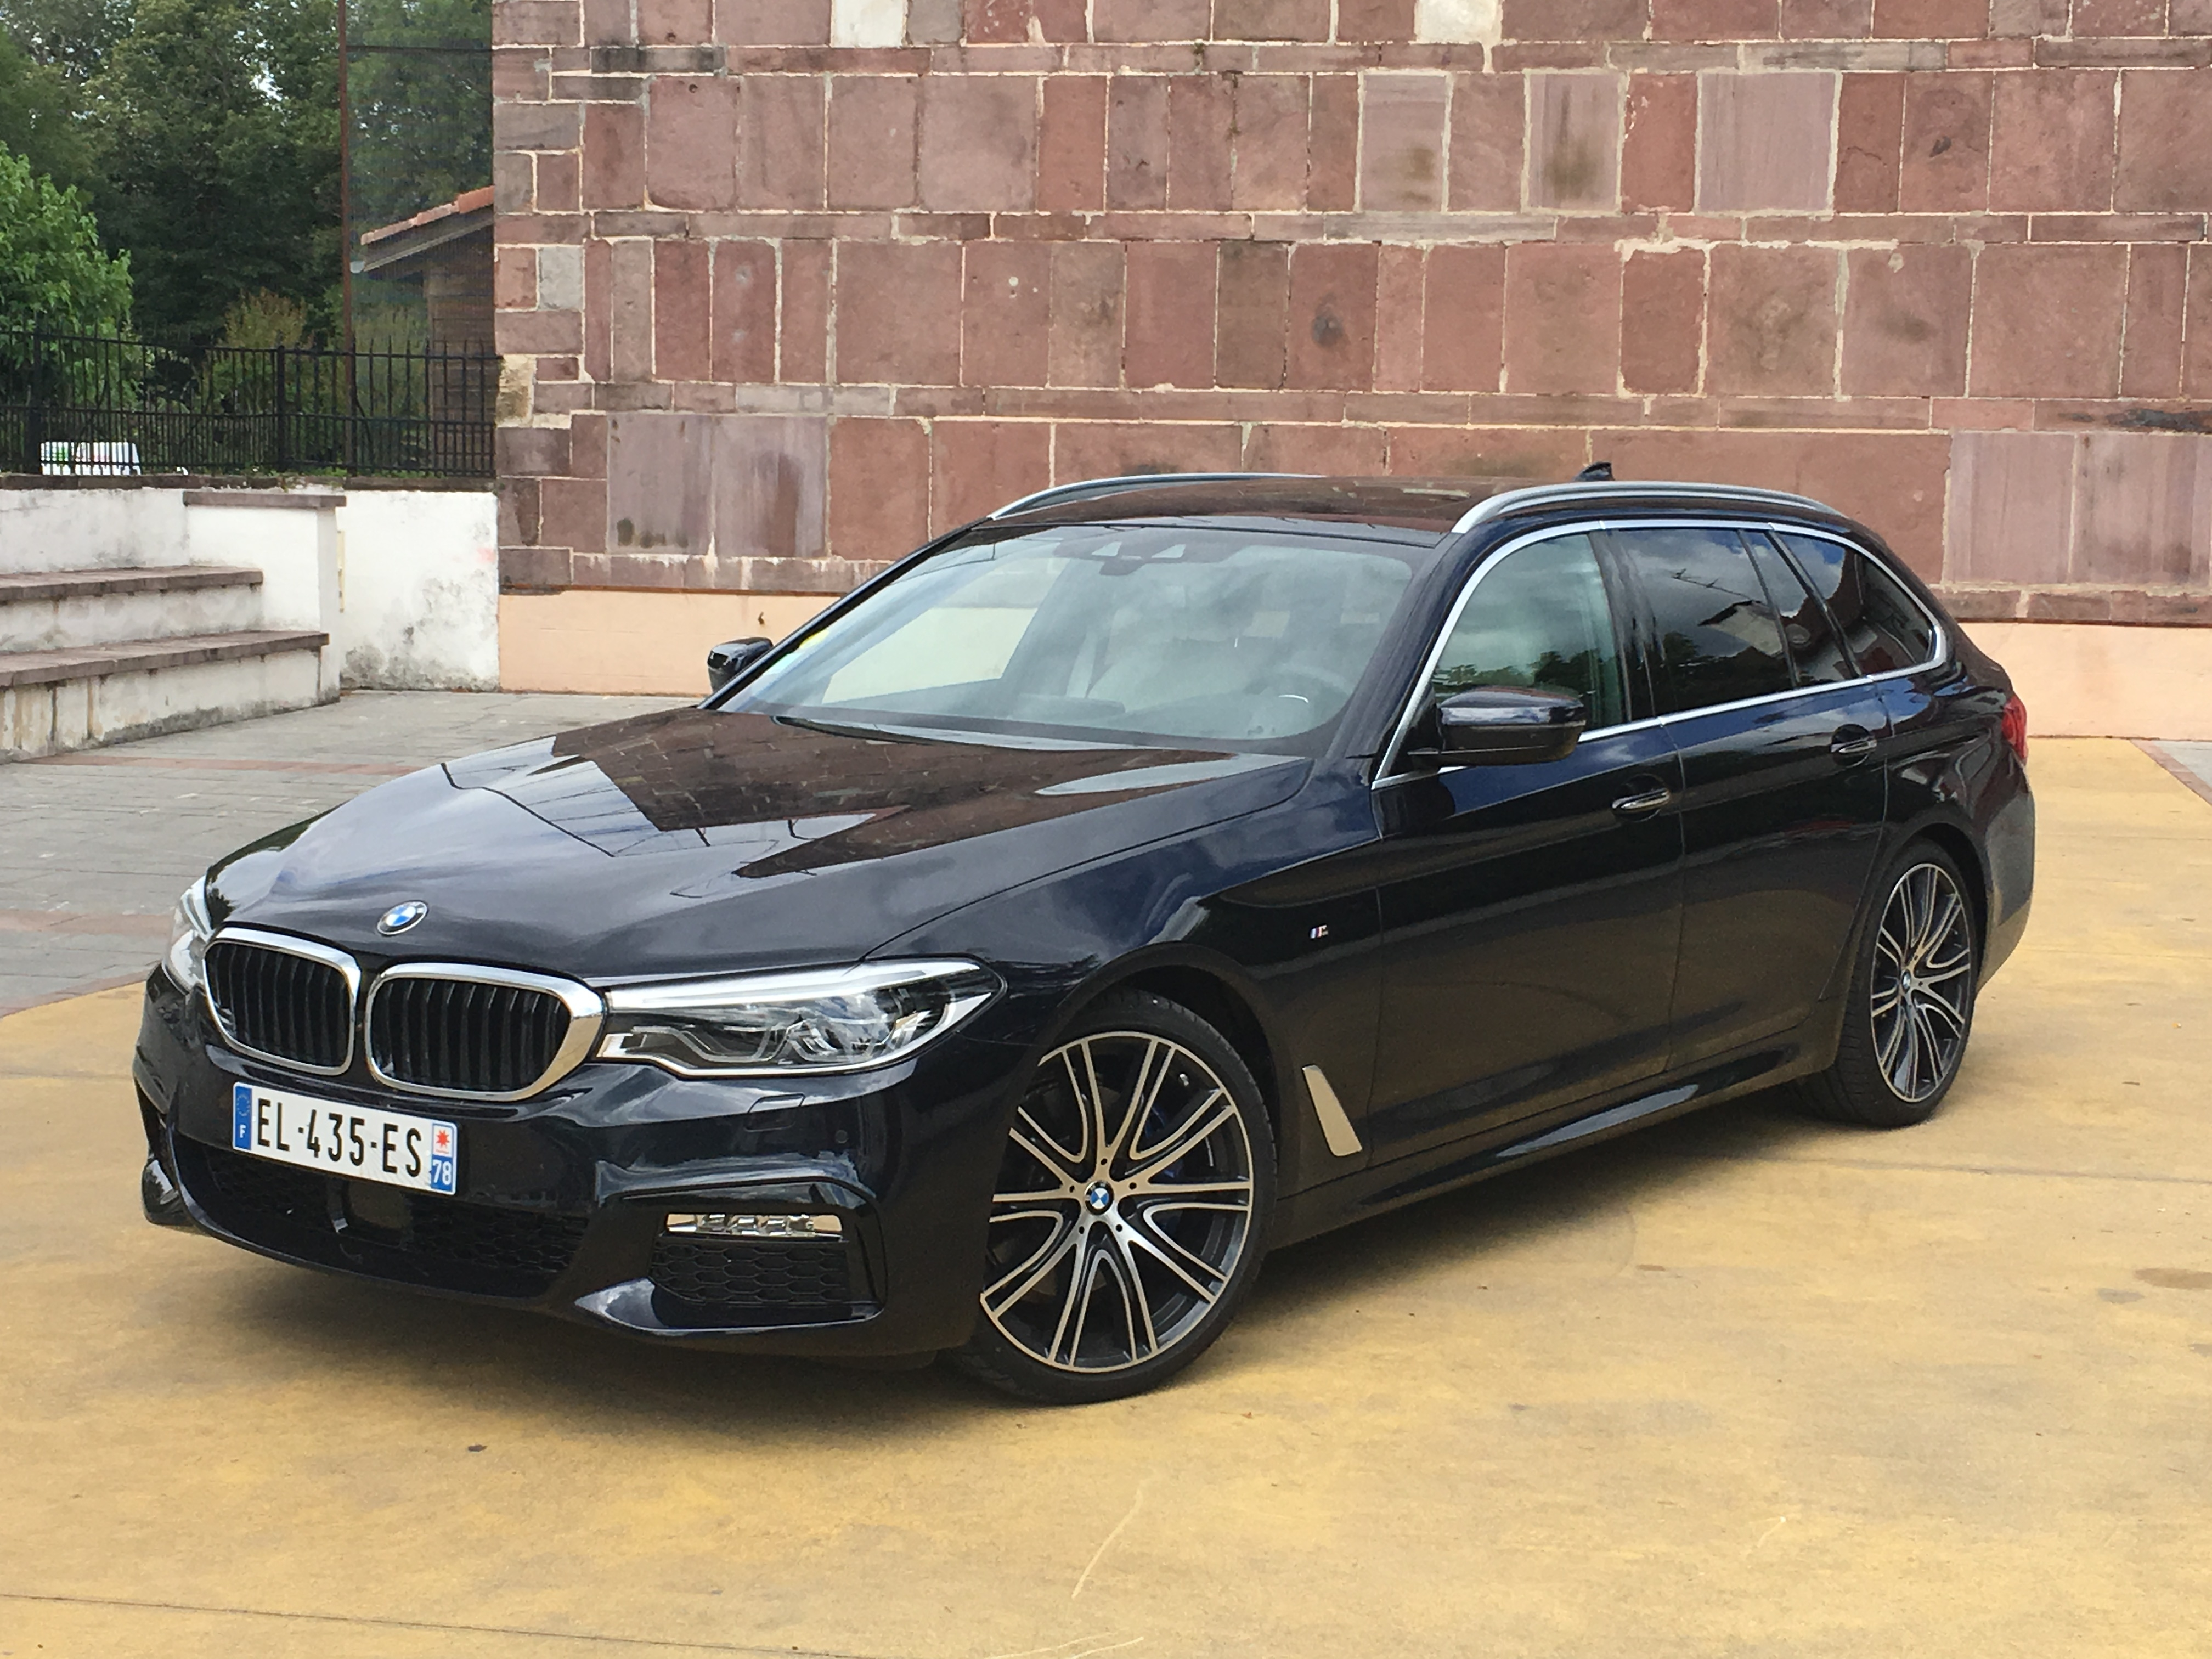 bmw s rie 5 touring les premi res images de l 39 essai en live et les impressions de conduite. Black Bedroom Furniture Sets. Home Design Ideas